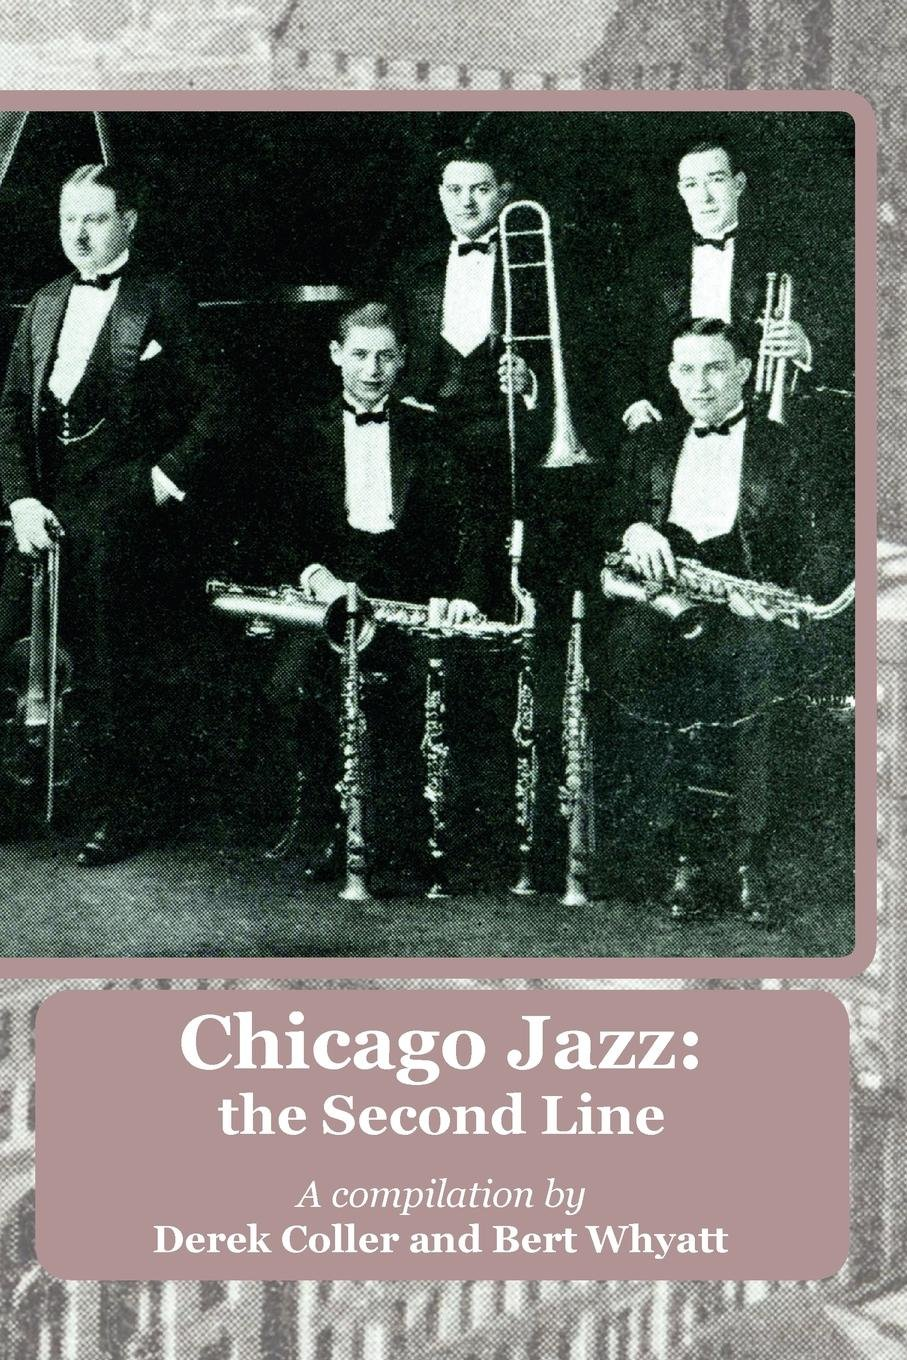 Chicago Jazz: The Second Line